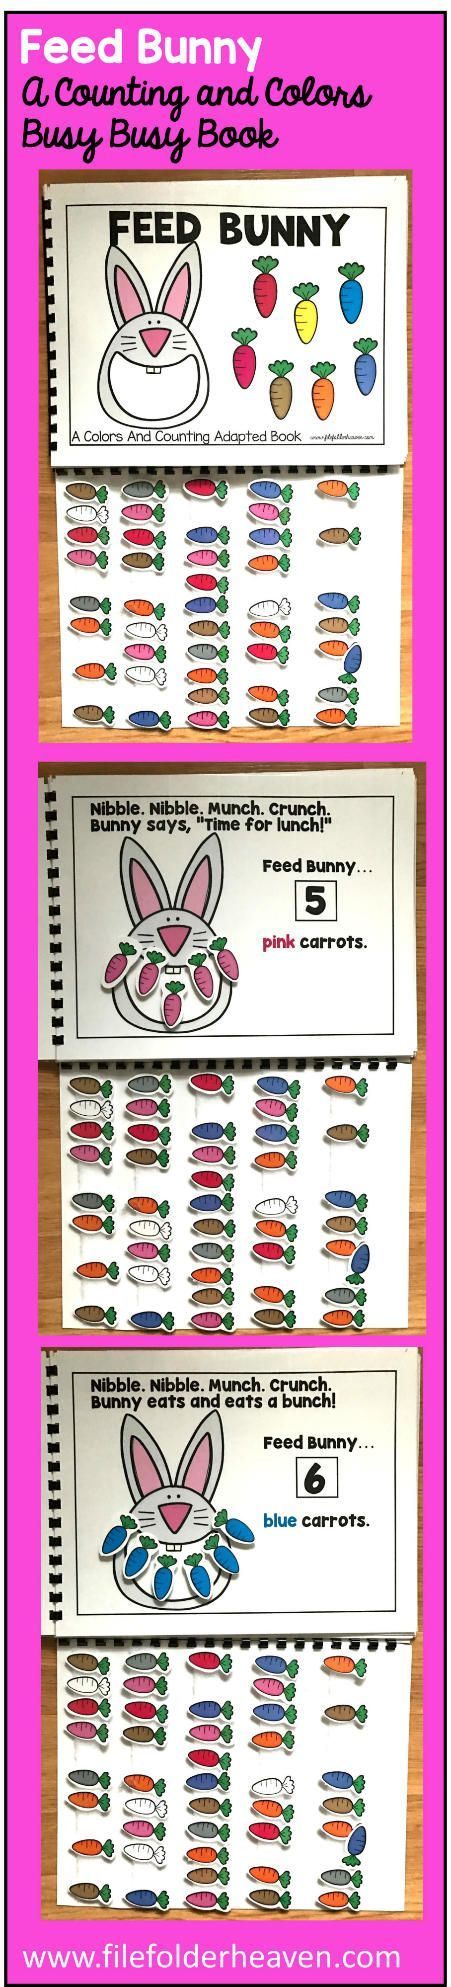 Coloring by numbers for rabbits - 25 Best Ideas About Bunny Coloring Pages On Pinterest Easter Coloring Pages Printable Easter Coloring Pages And Easter Colouring